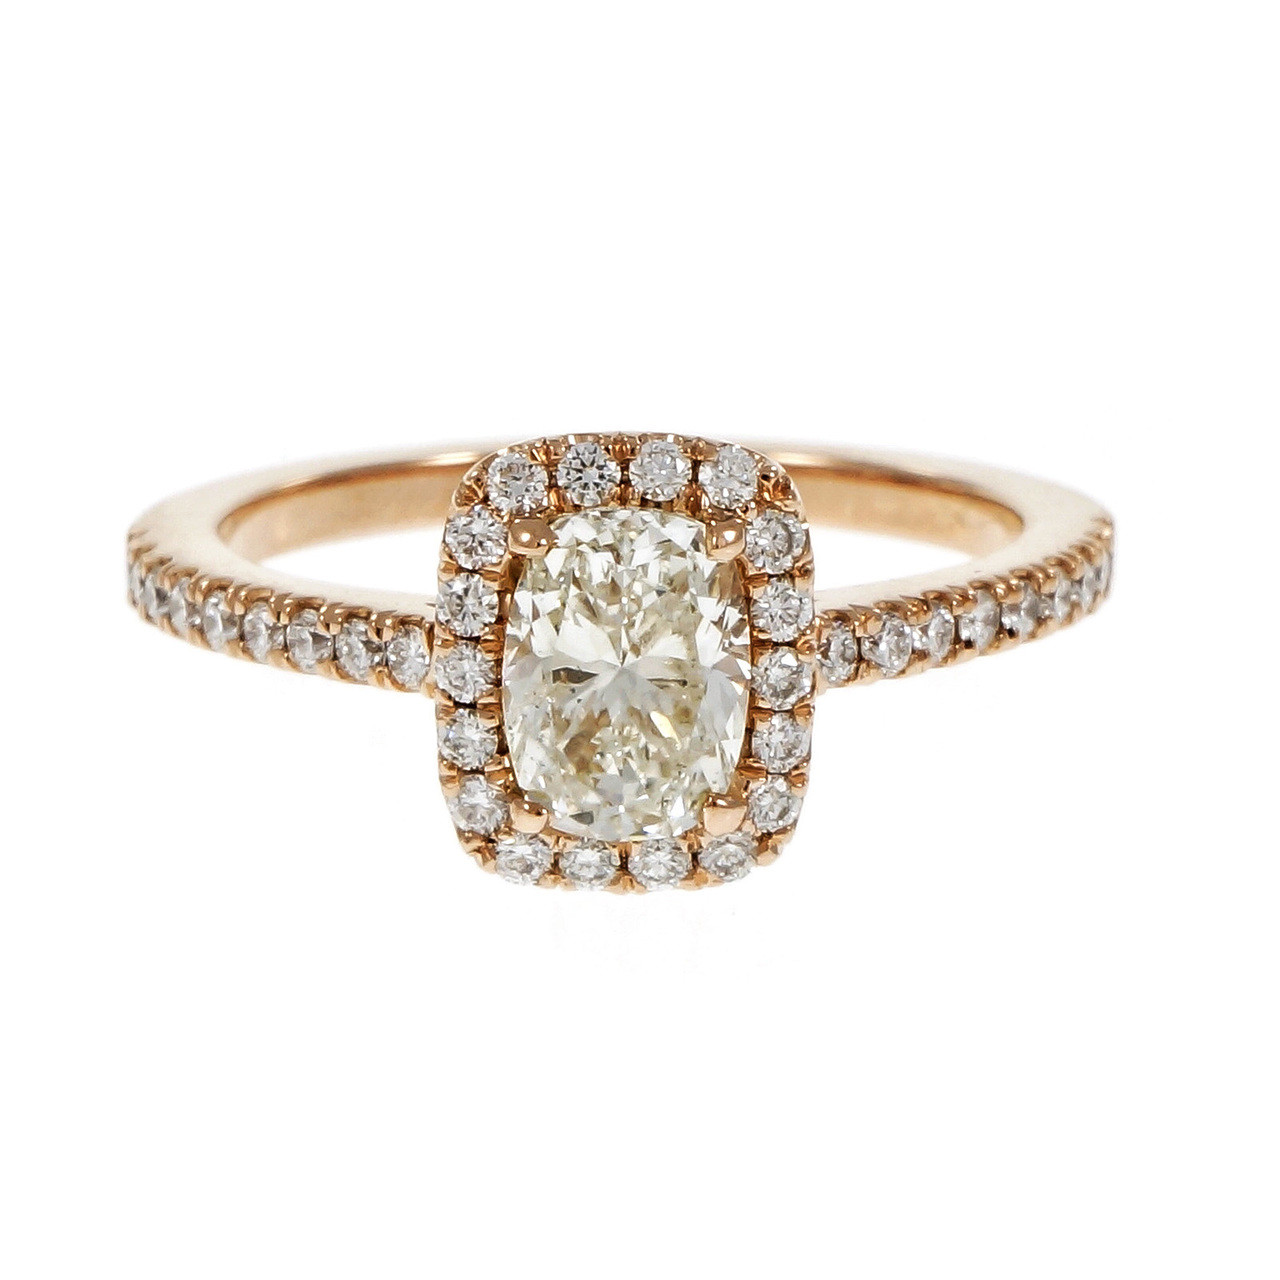 Peter Suchy Antique Cushion Cut Diamond Engagement Ring Pink Rose Gold Halo